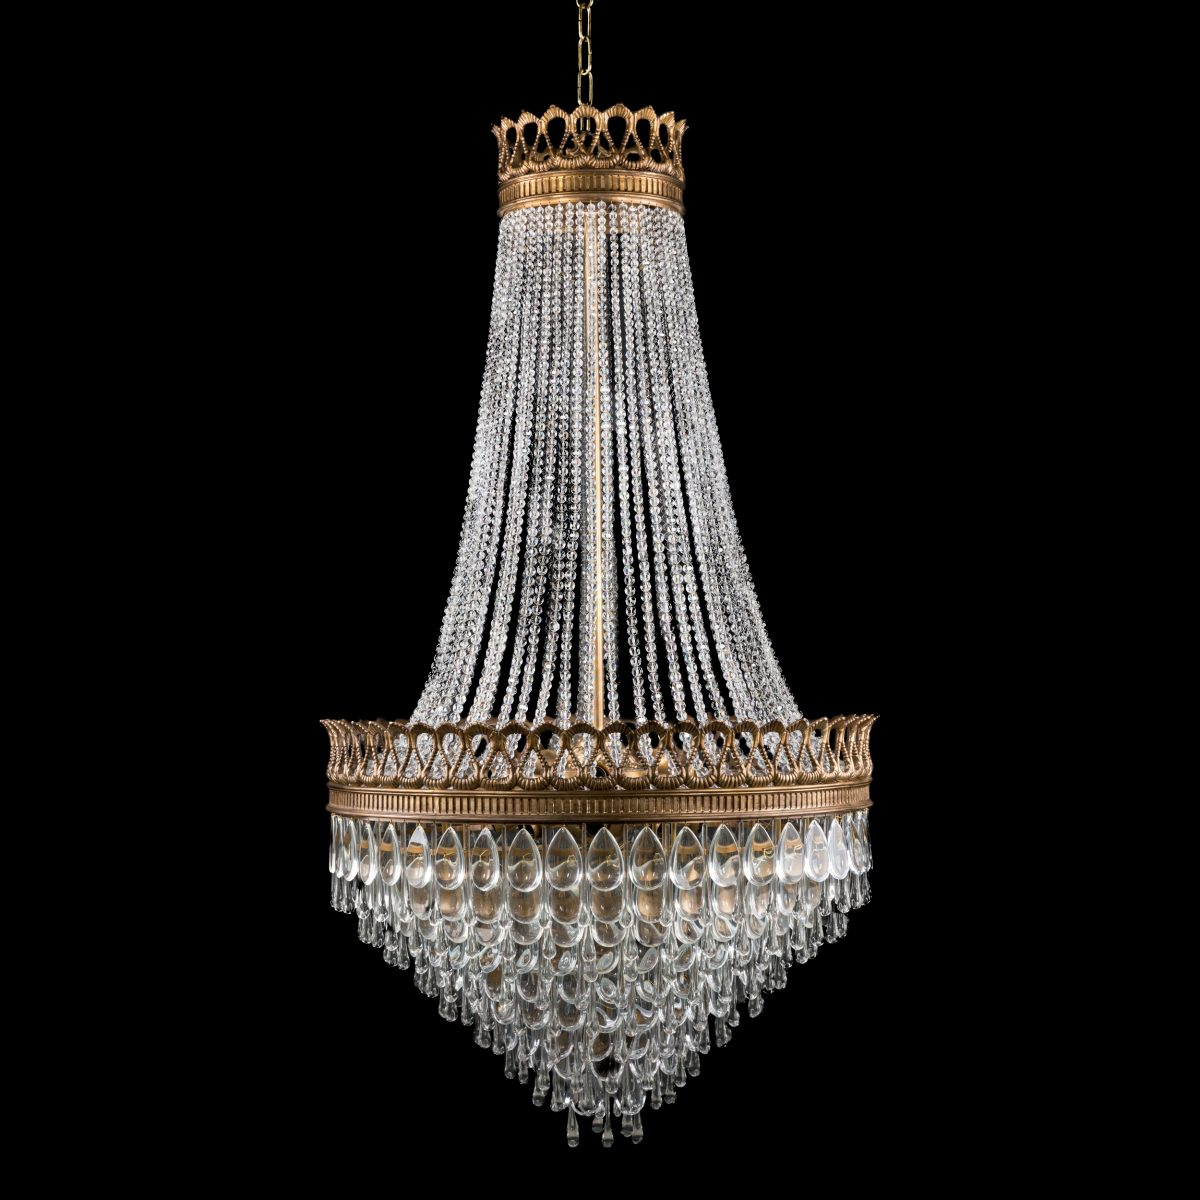 Handcrafted Lighting Designs by Badari badari Handcrafted Lighting Designs by Badari isaloni 2019 Mesmerizing Handcrafted Lighting Designs by Badari Chandelier Empire 2017